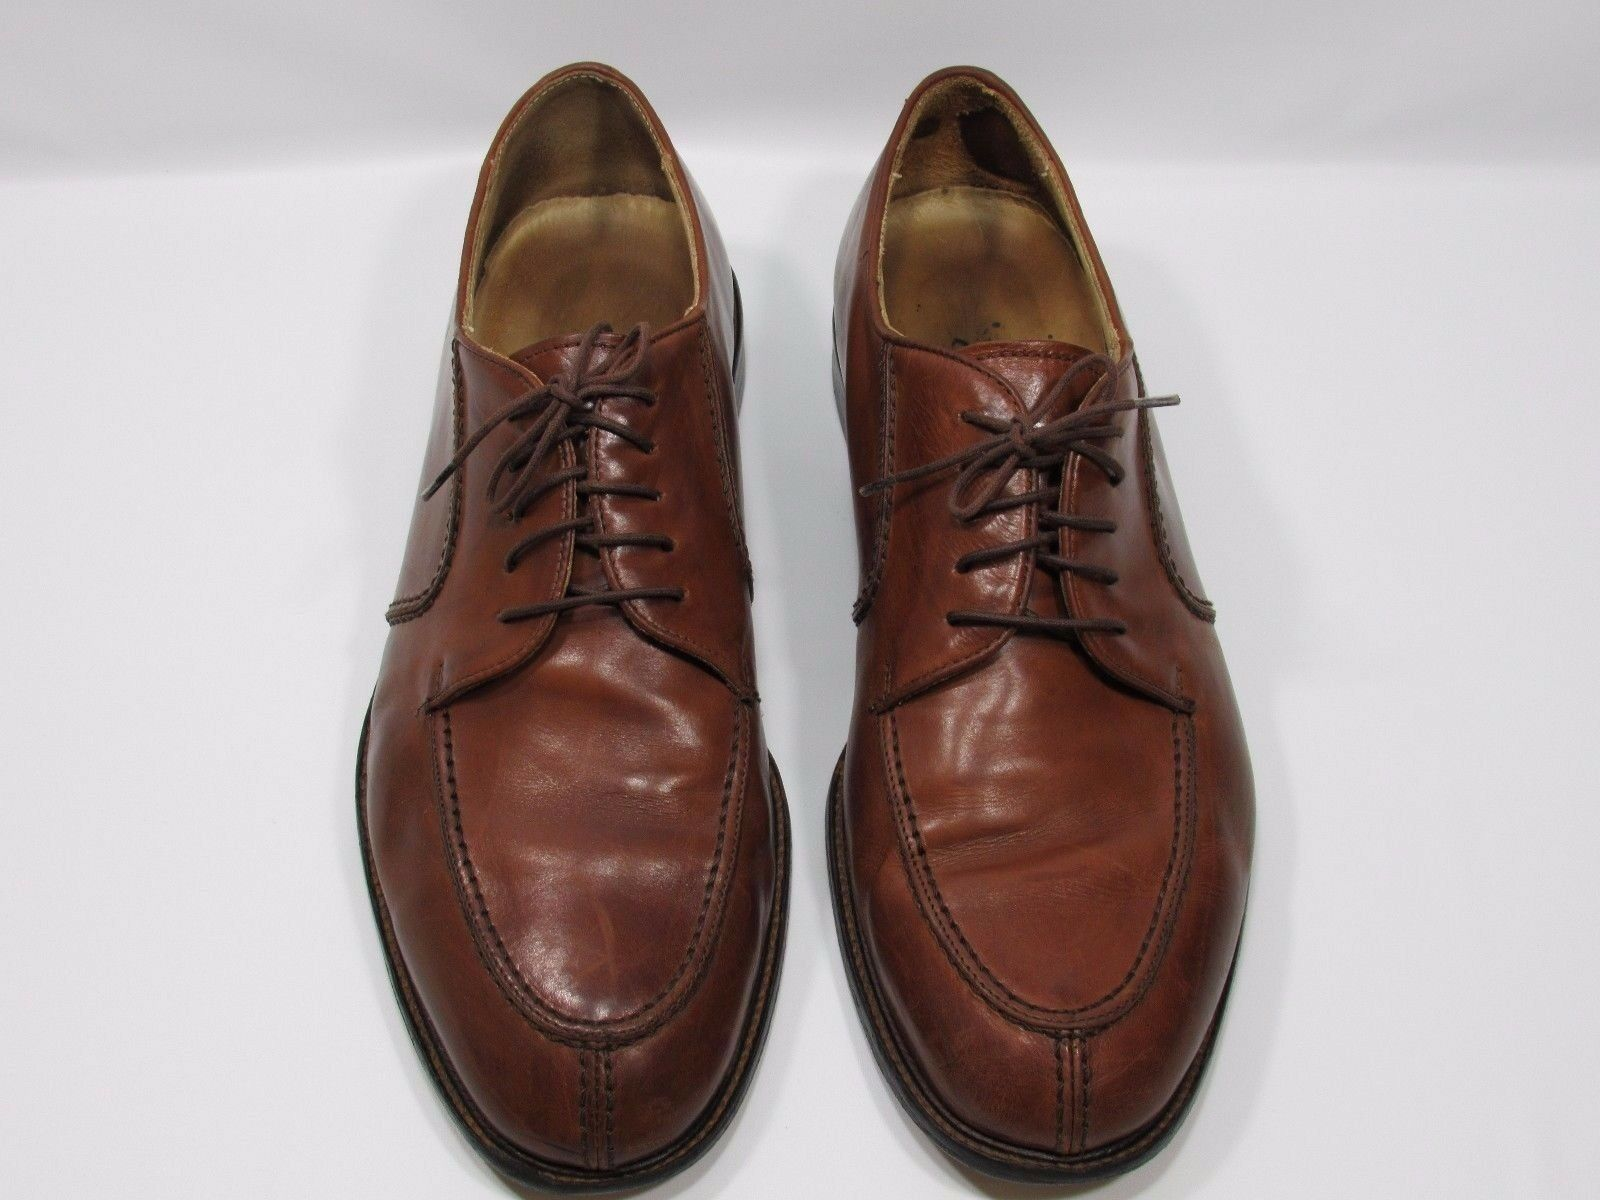 newest 491b1 53361 men BROWN ALL LEATHER SIZE 11.5 M MADE IN ITALY PRONTO oqmmjn1104-Men s  Formal